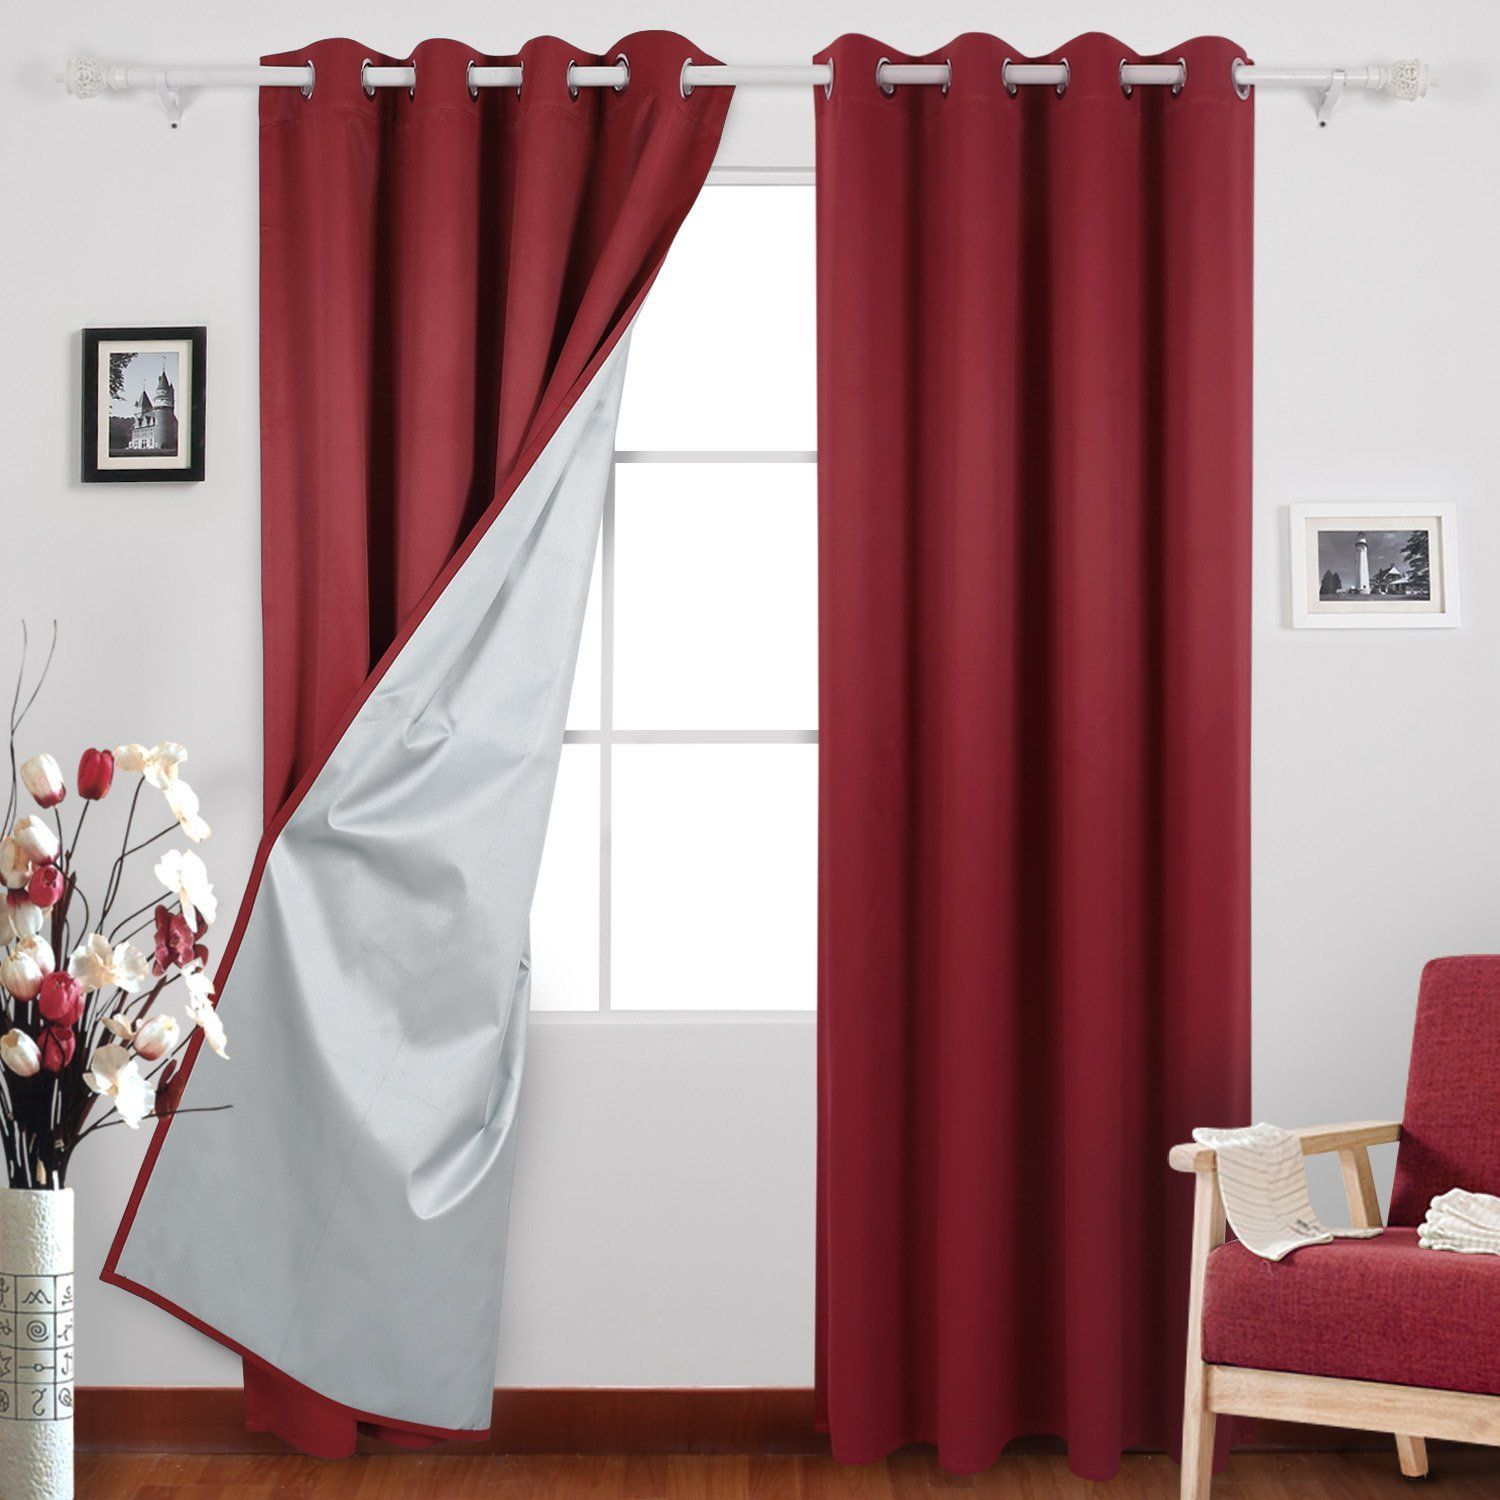 grommet cur with products insulated burgundy curtain panels of window chevron curtains blackout pack chrome design burg treatment white thermal